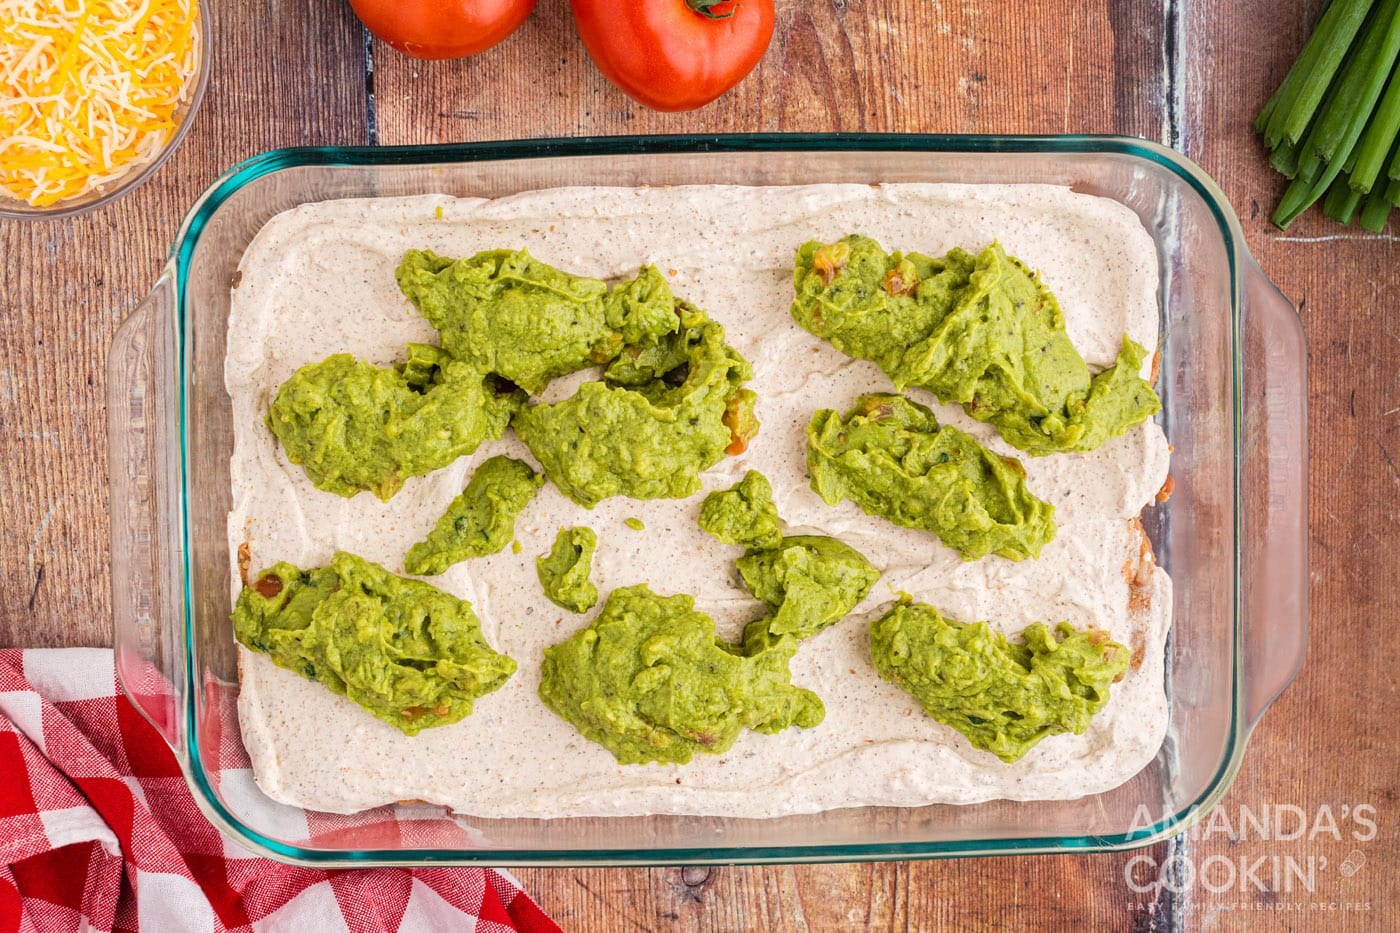 dollops of guacamole on top of sour cream and cream cheese in a dish